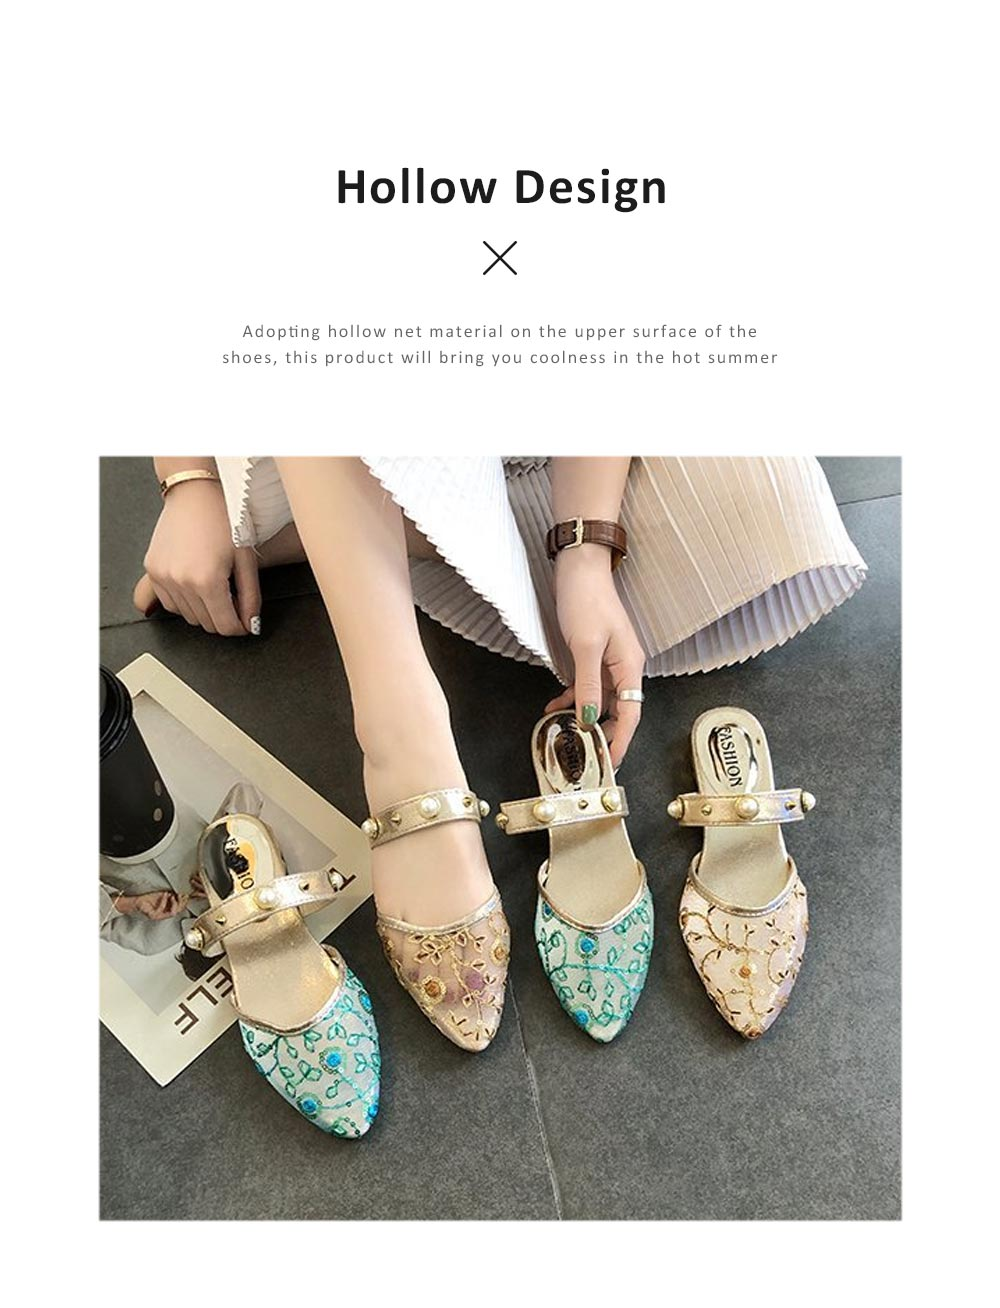 2019 Latest Style Elegant Sandals for Women, Rivet Pearl Decorating Hollow Casual Slippers 5